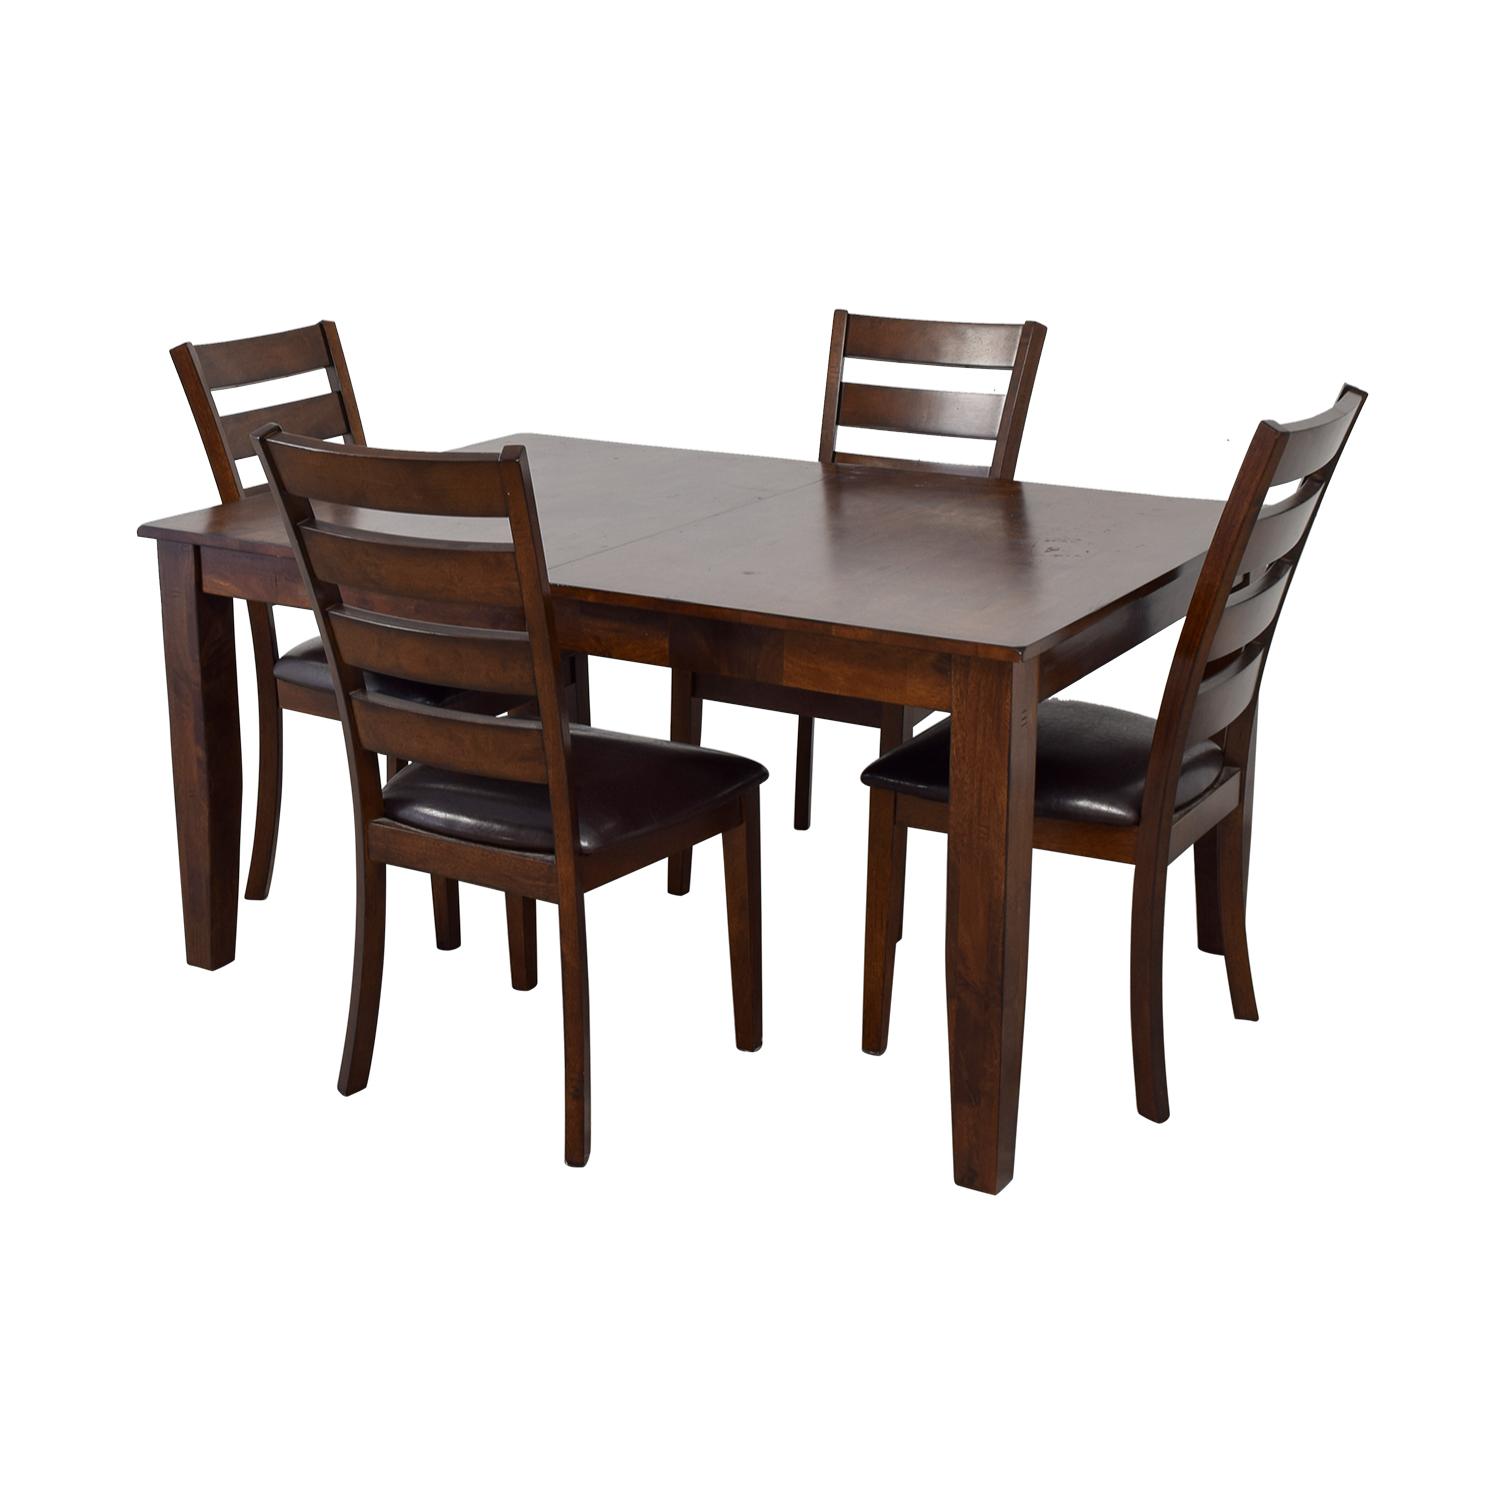 shop Raymour & Flanigan Raymour & Flanigan Wood Extendable Kitchen Dining Set online